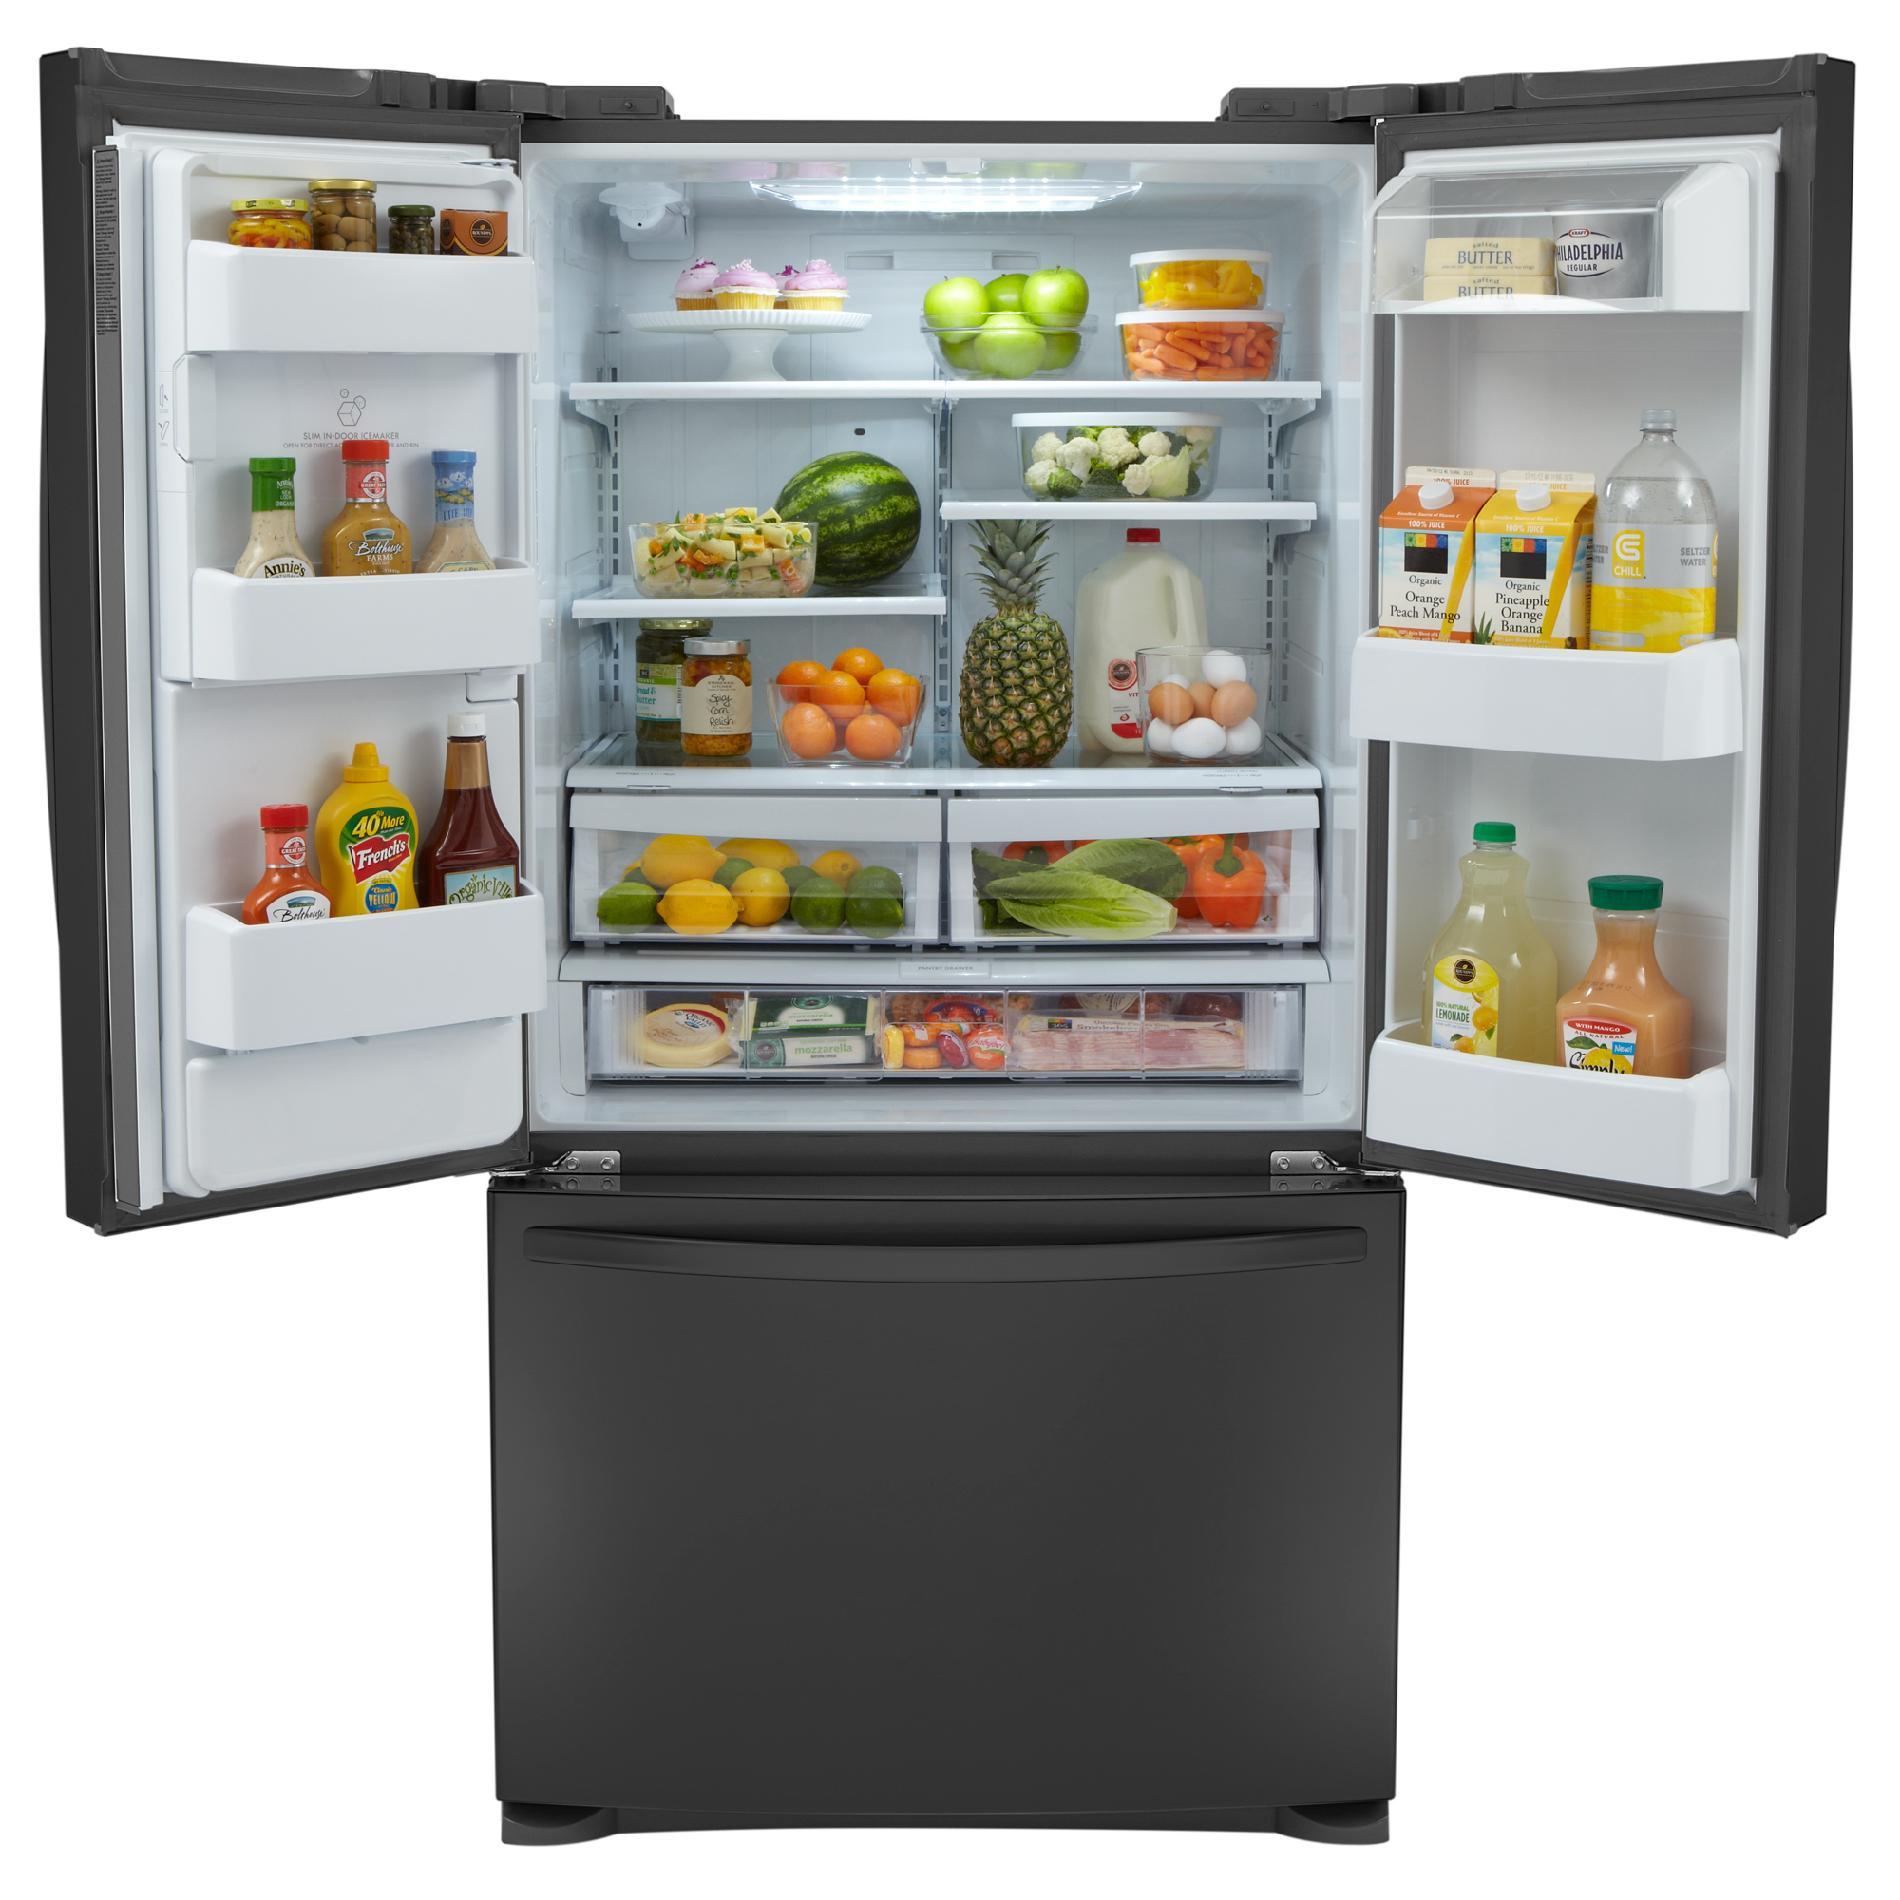 Kenmore 24.1 cu. ft. French Door Bottom-Freezer Refrigerator- Black